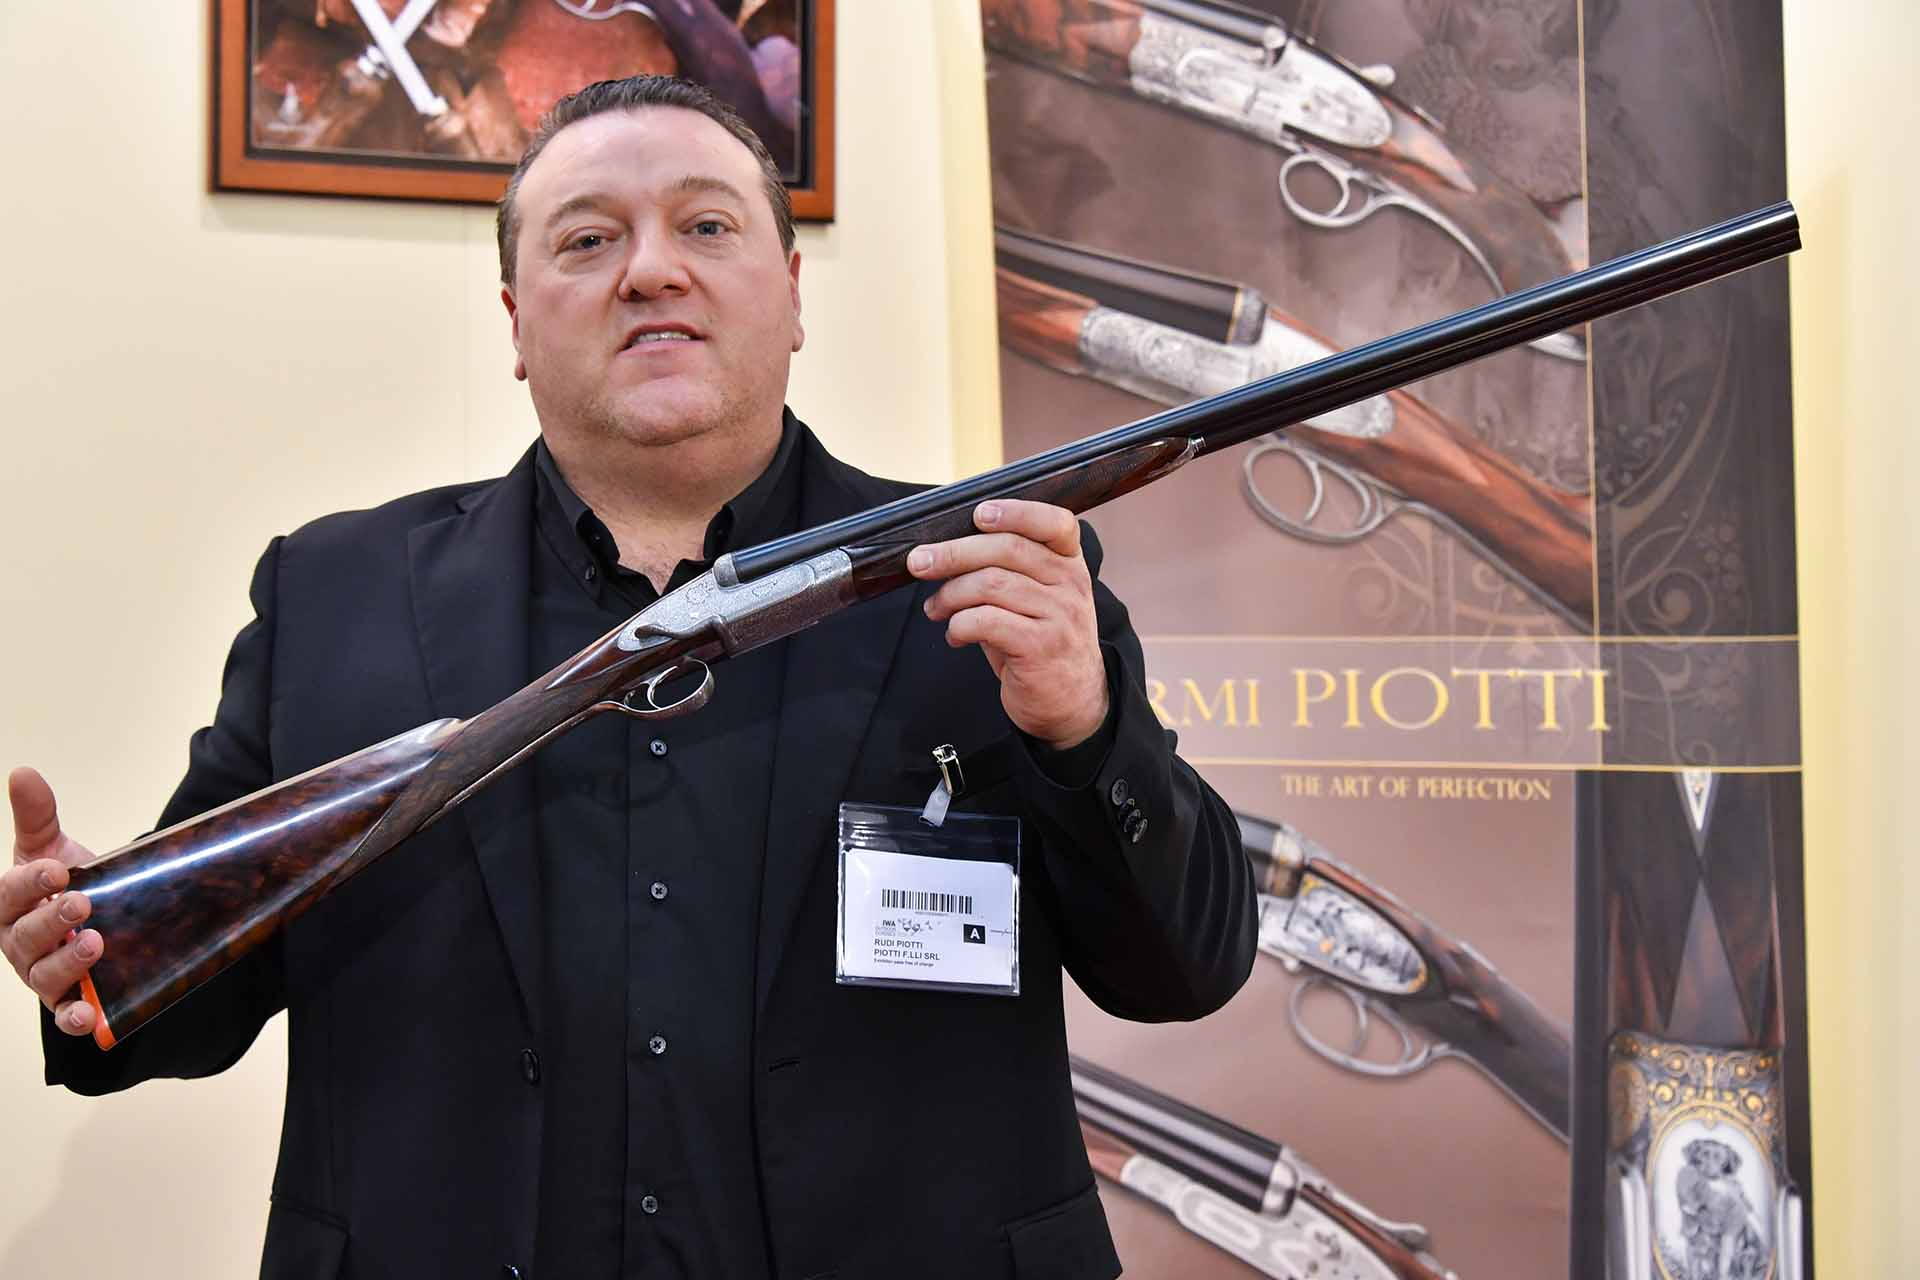 Piotti Serpentine Side Lever action side by side shotgun